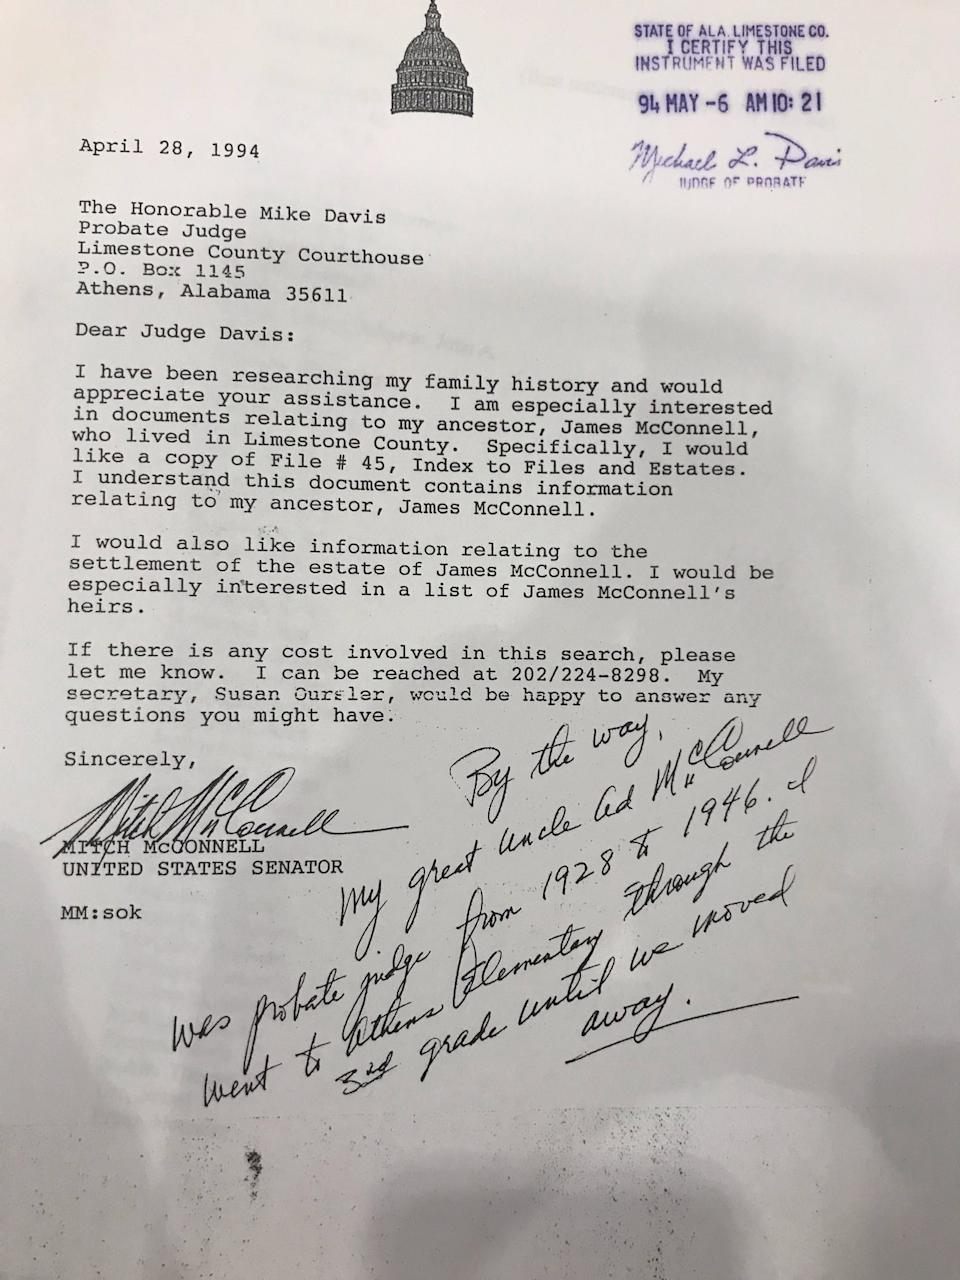 Sen. Mitch McConnell wrote a letter in 1994 requesting records about his family history that included information about the slaves they owned.